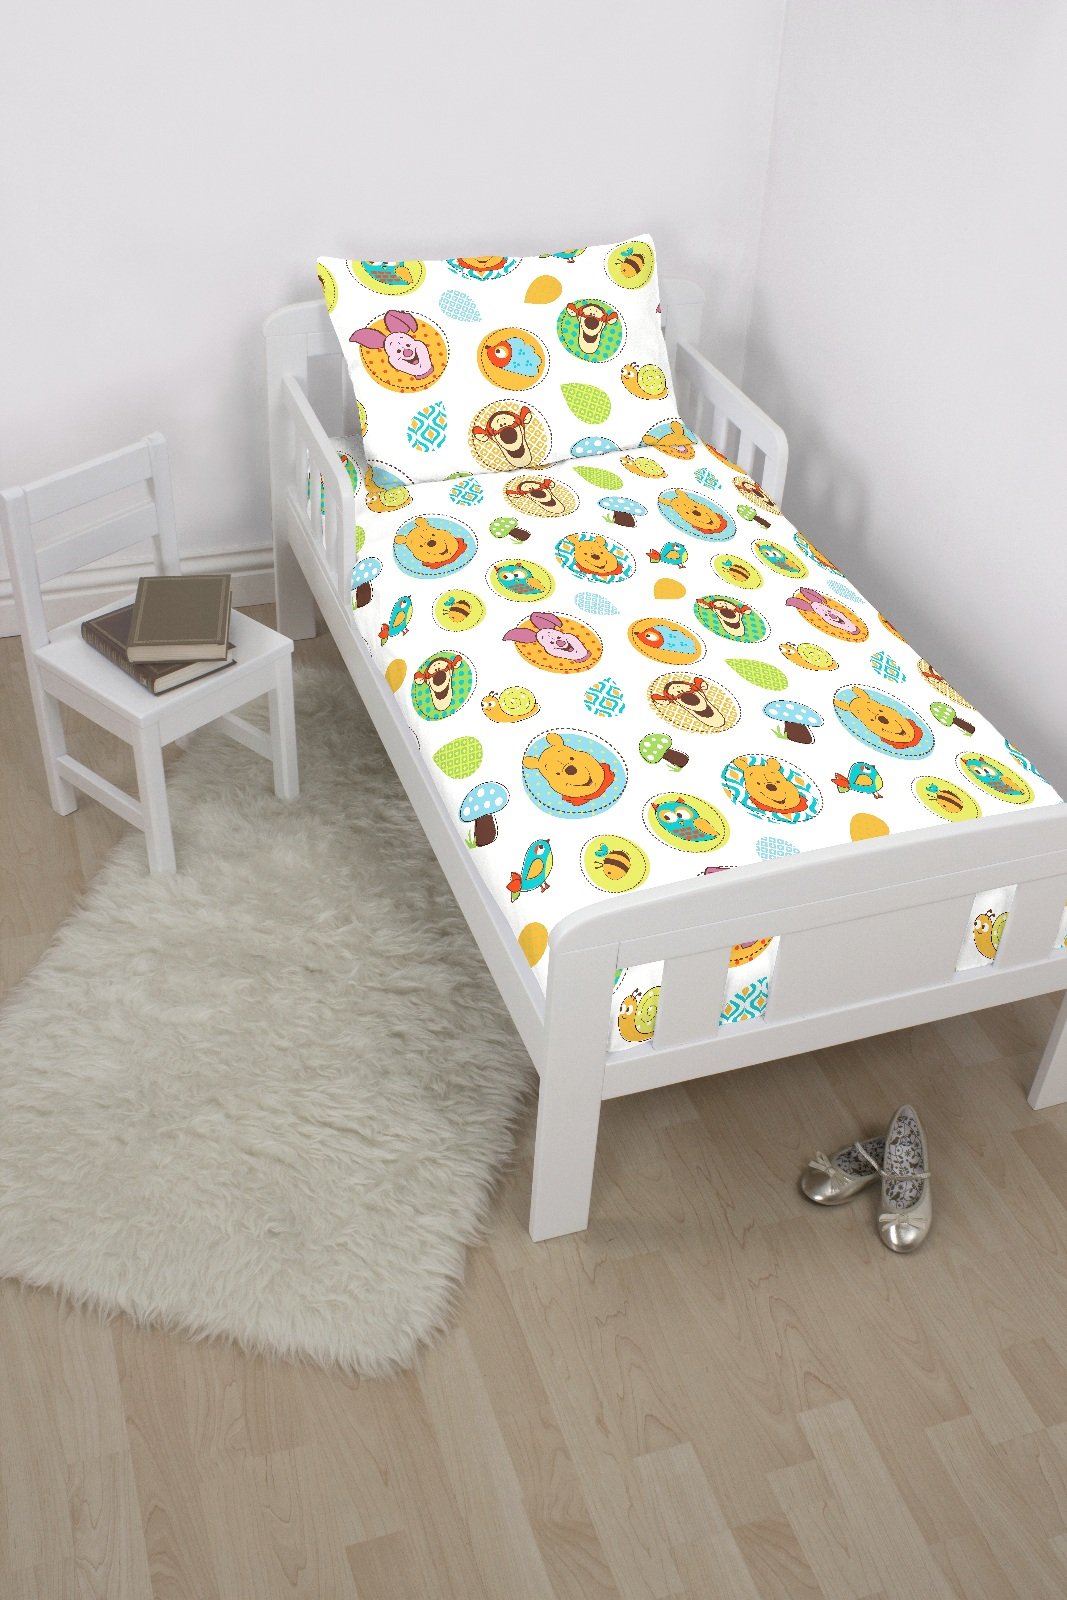 Winnie the pooh toddler bedding - Winnie The Pooh Forest Design Junior Bedding Bundle Includes Quilt Duvet Cover Pillow Pillowcase